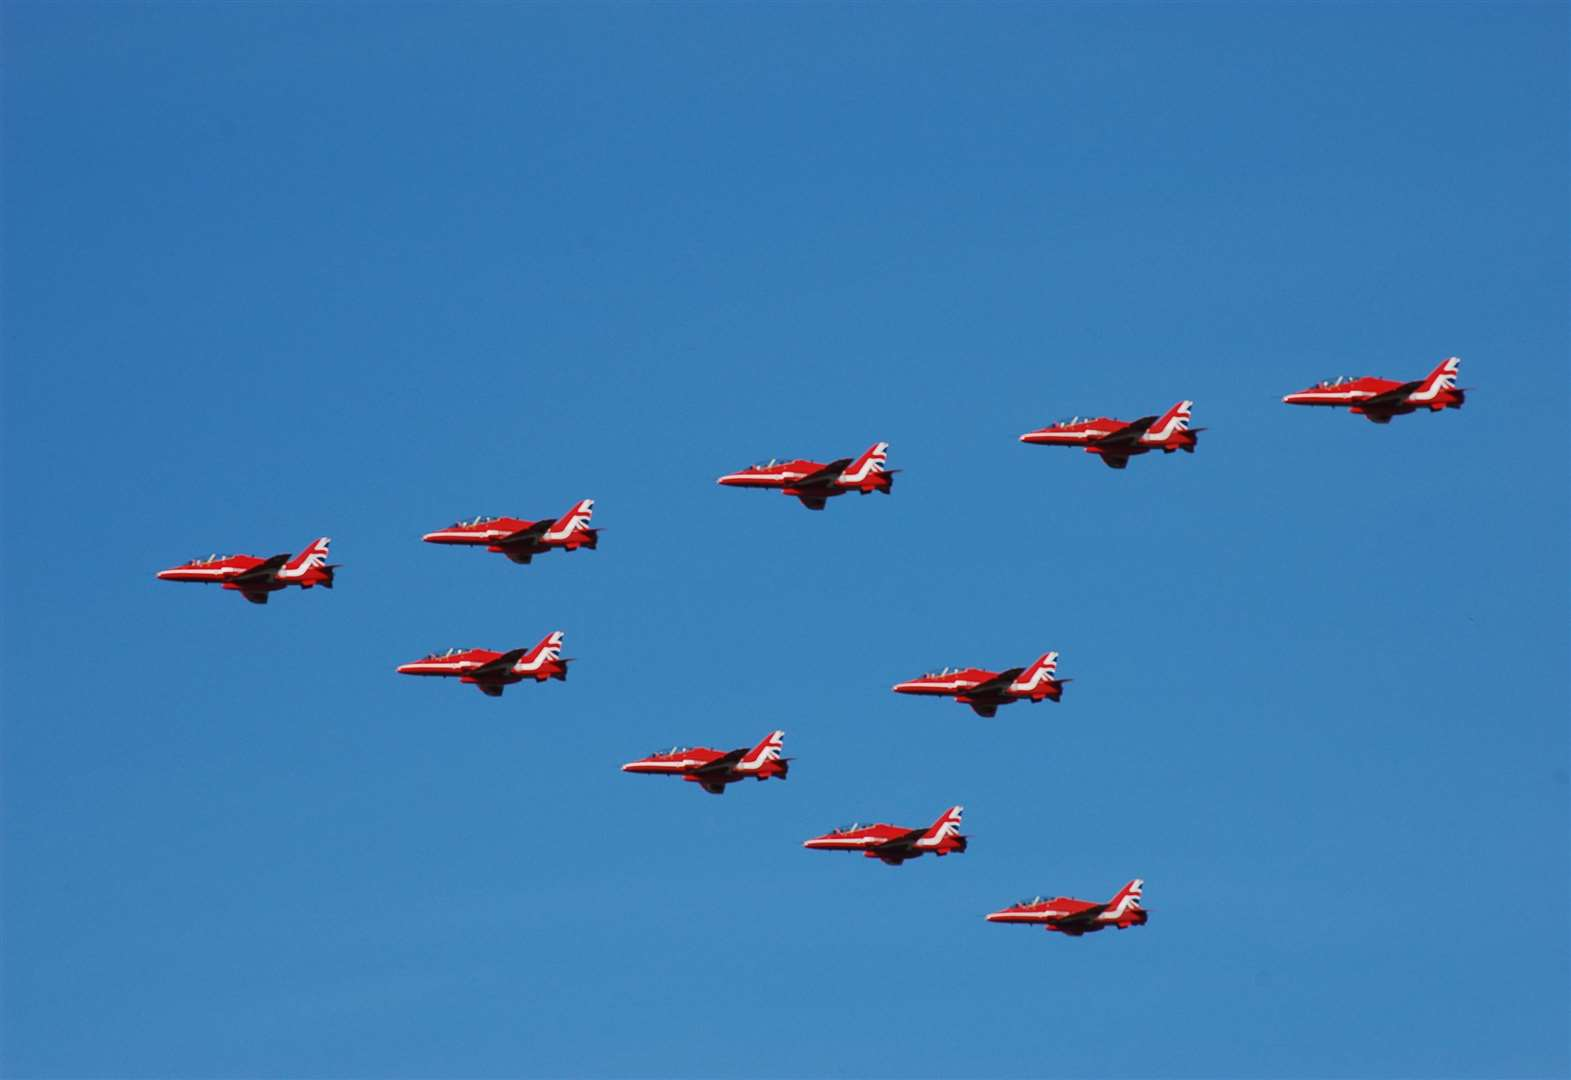 The Red Arrows could be coming to RAF Wittering